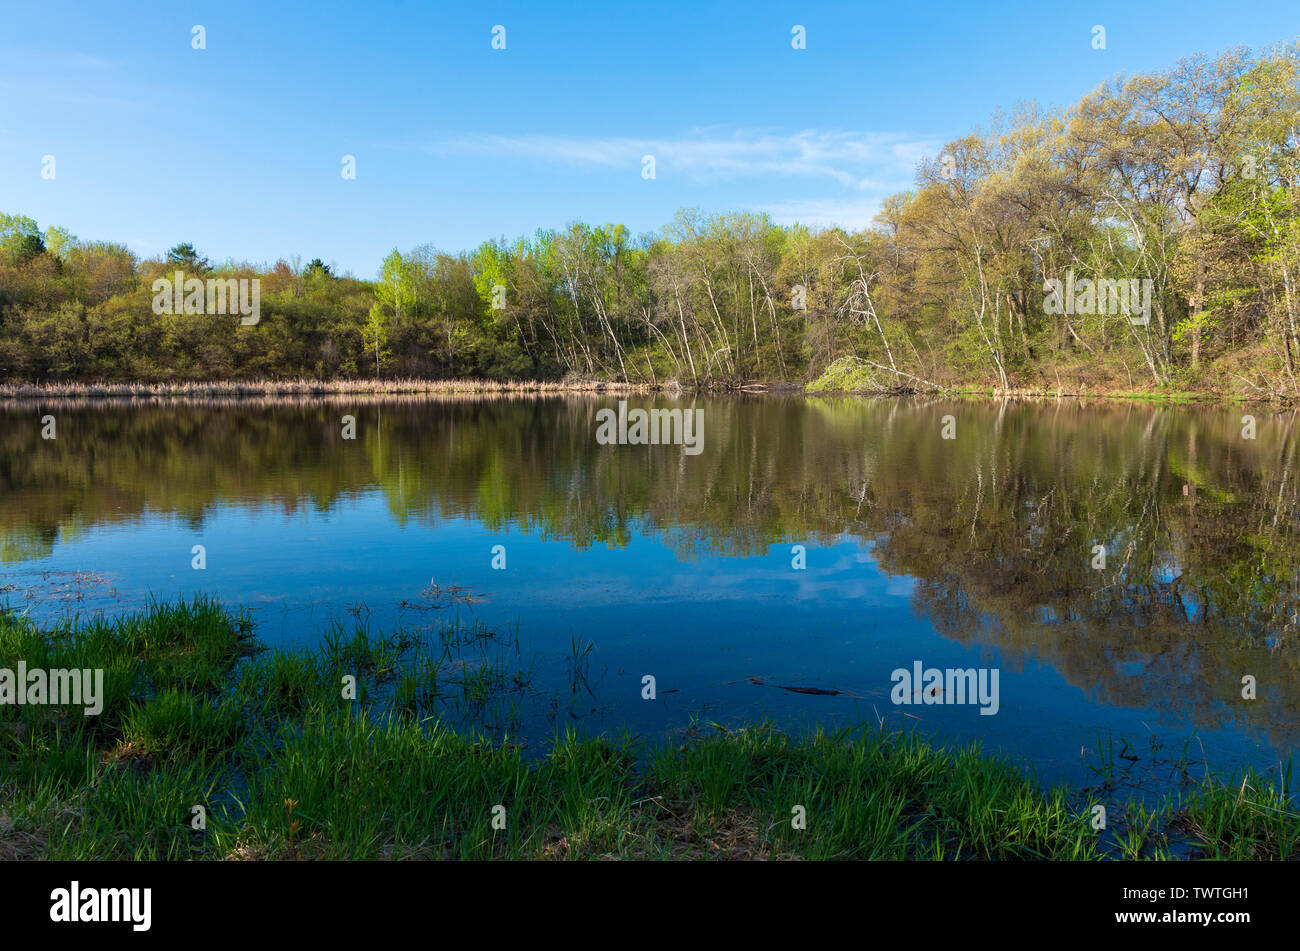 forest across pond and reflections atop water during spring at salem hills park in inver grove heights minnesota - Stock Image